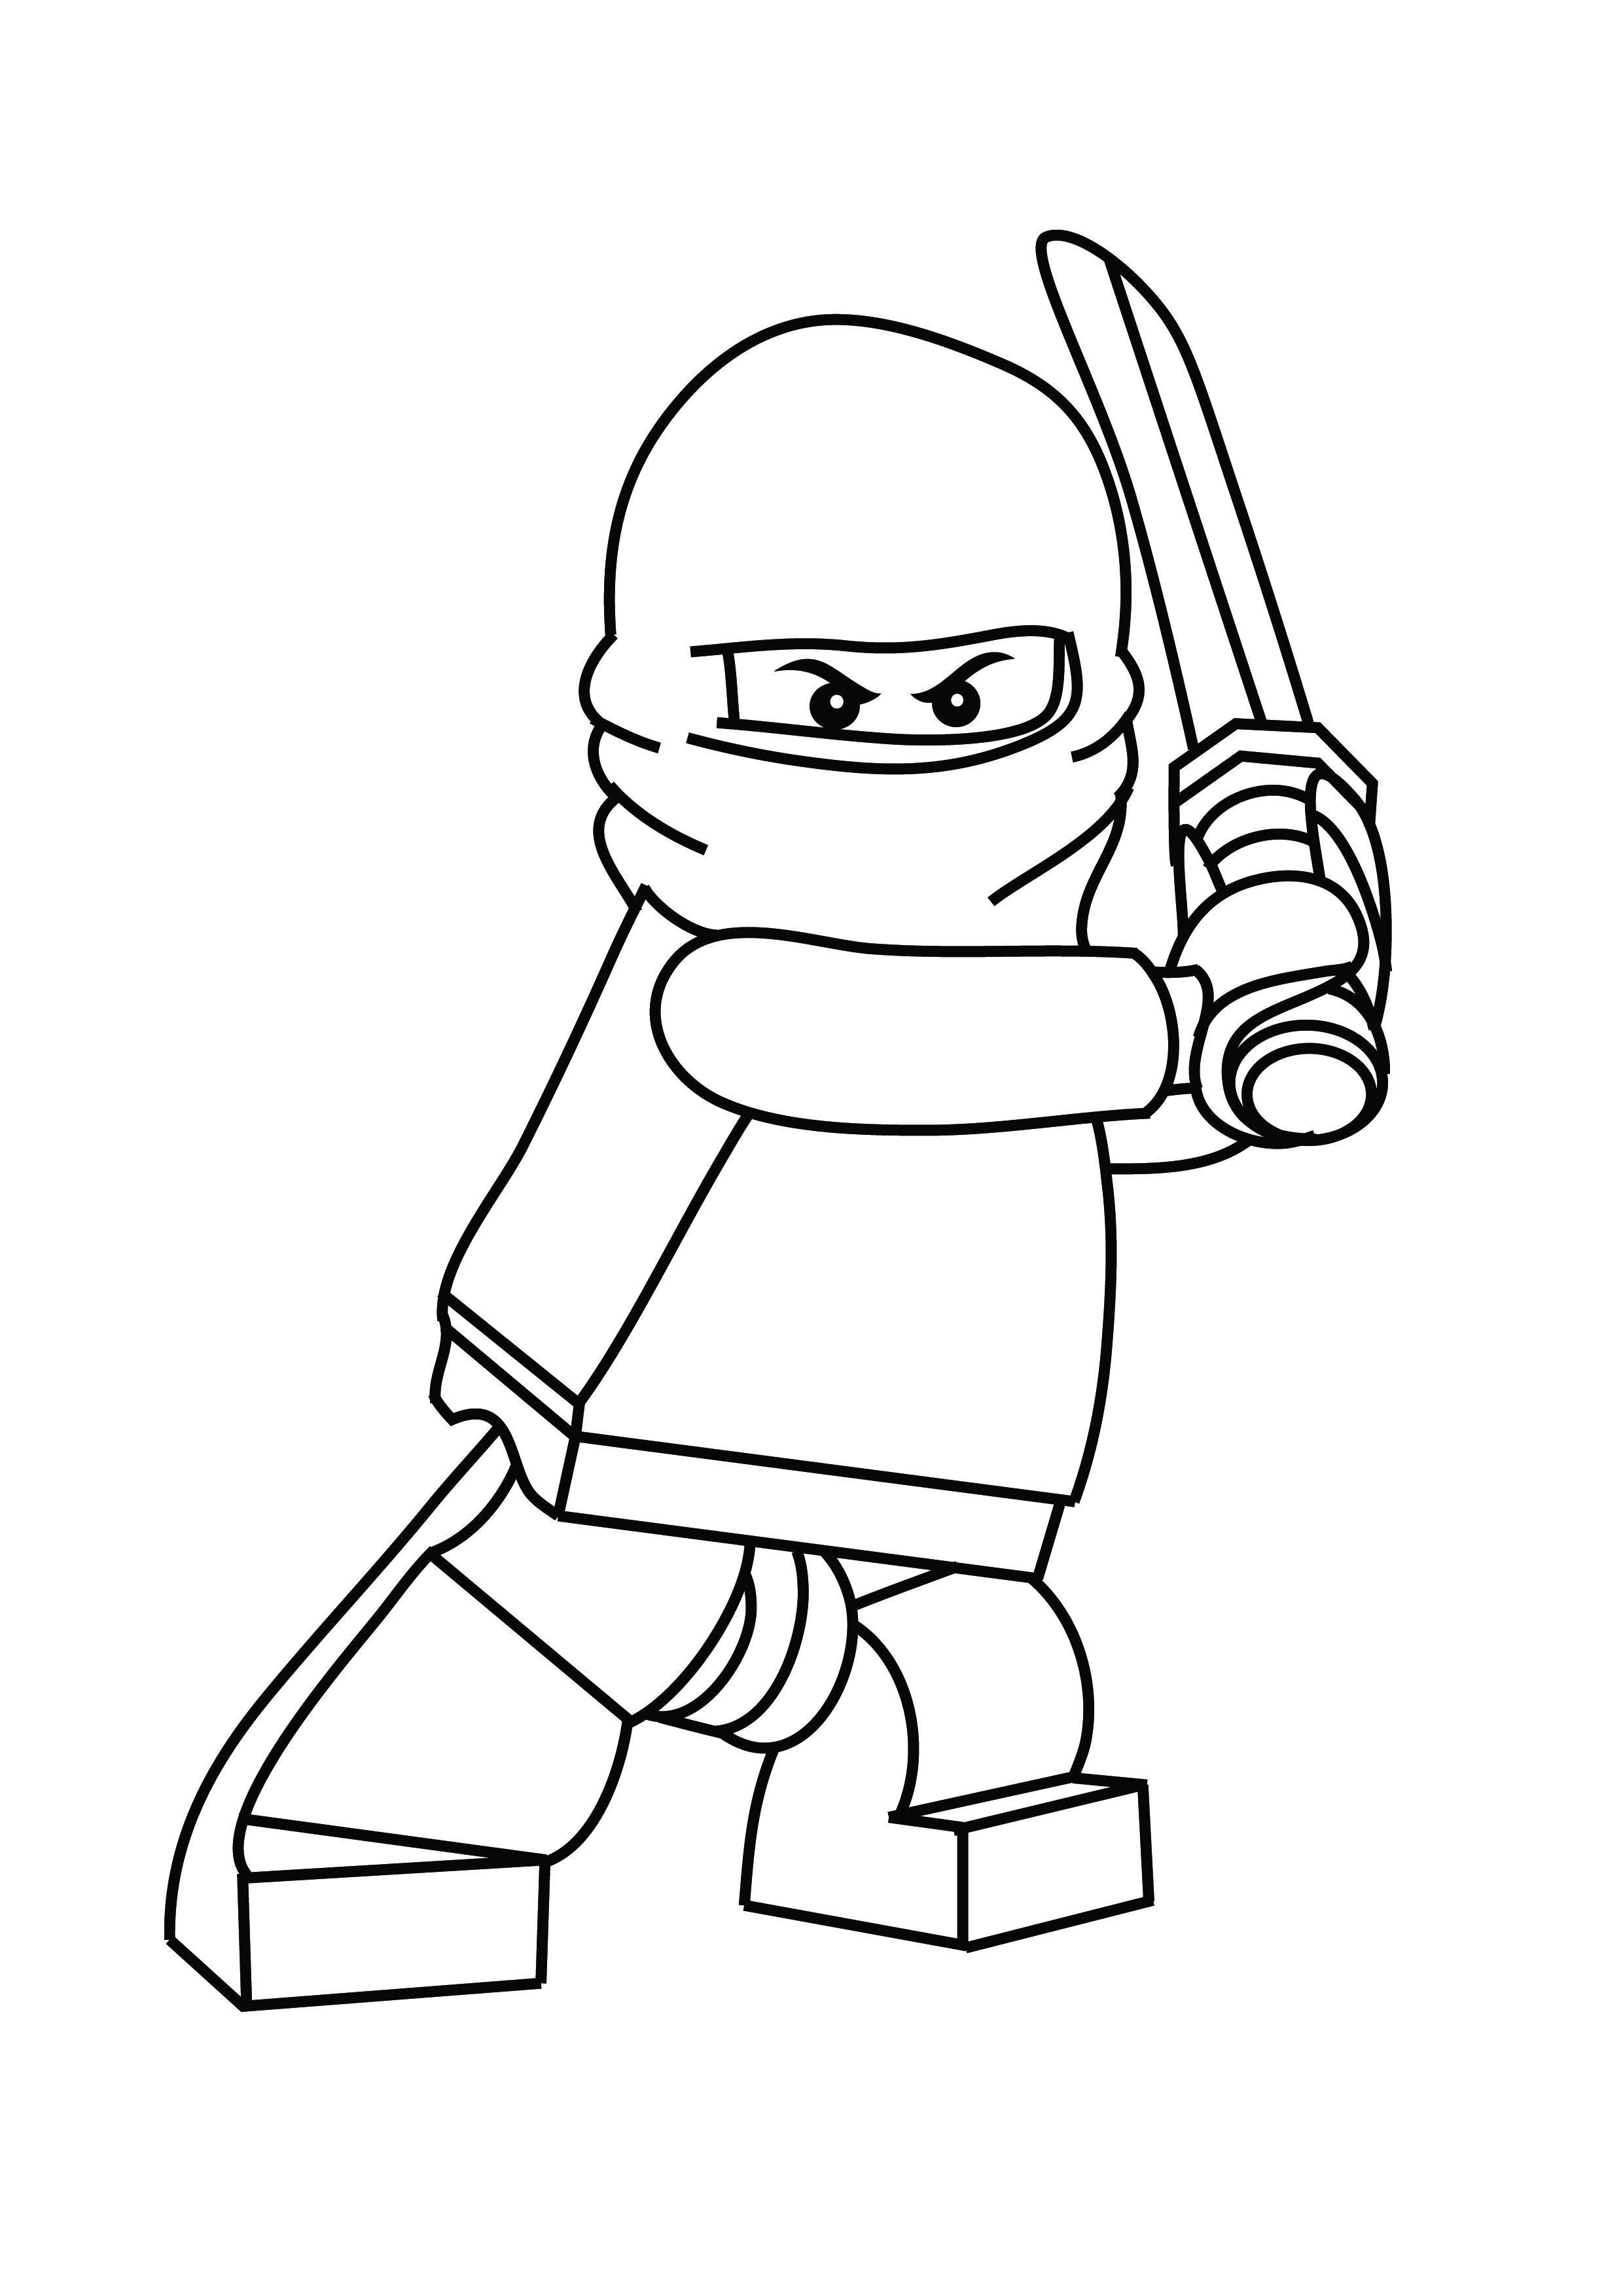 graphic relating to Printable Lego Coloring Pages called Absolutely free Printable Ninjago Coloring Webpages For Children Lukes